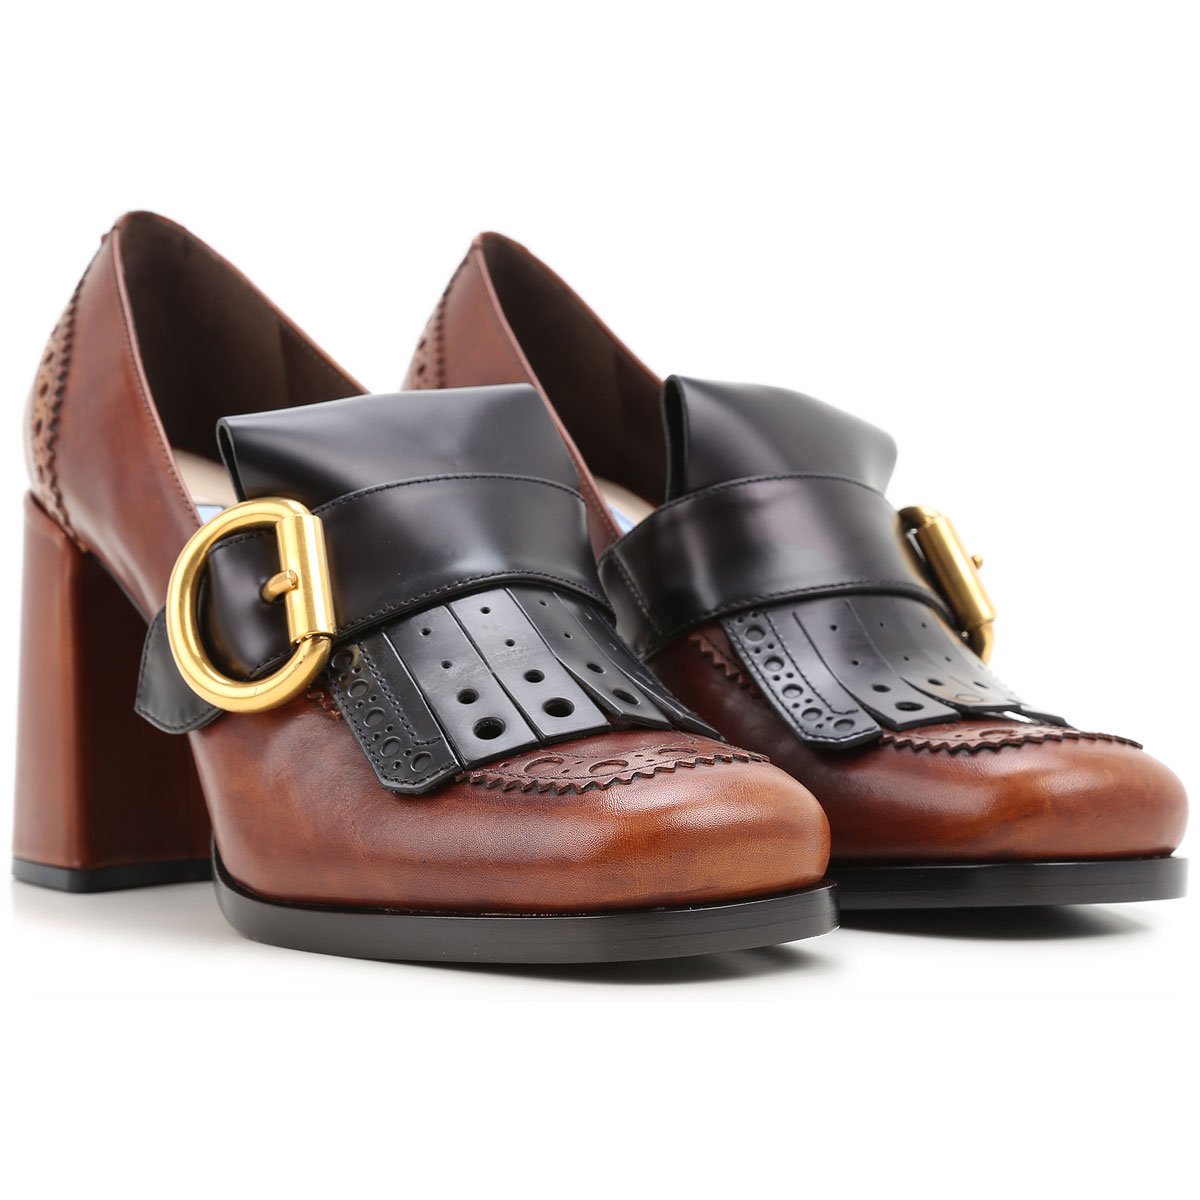 27a31bc84cd Prada. Shoes for Women